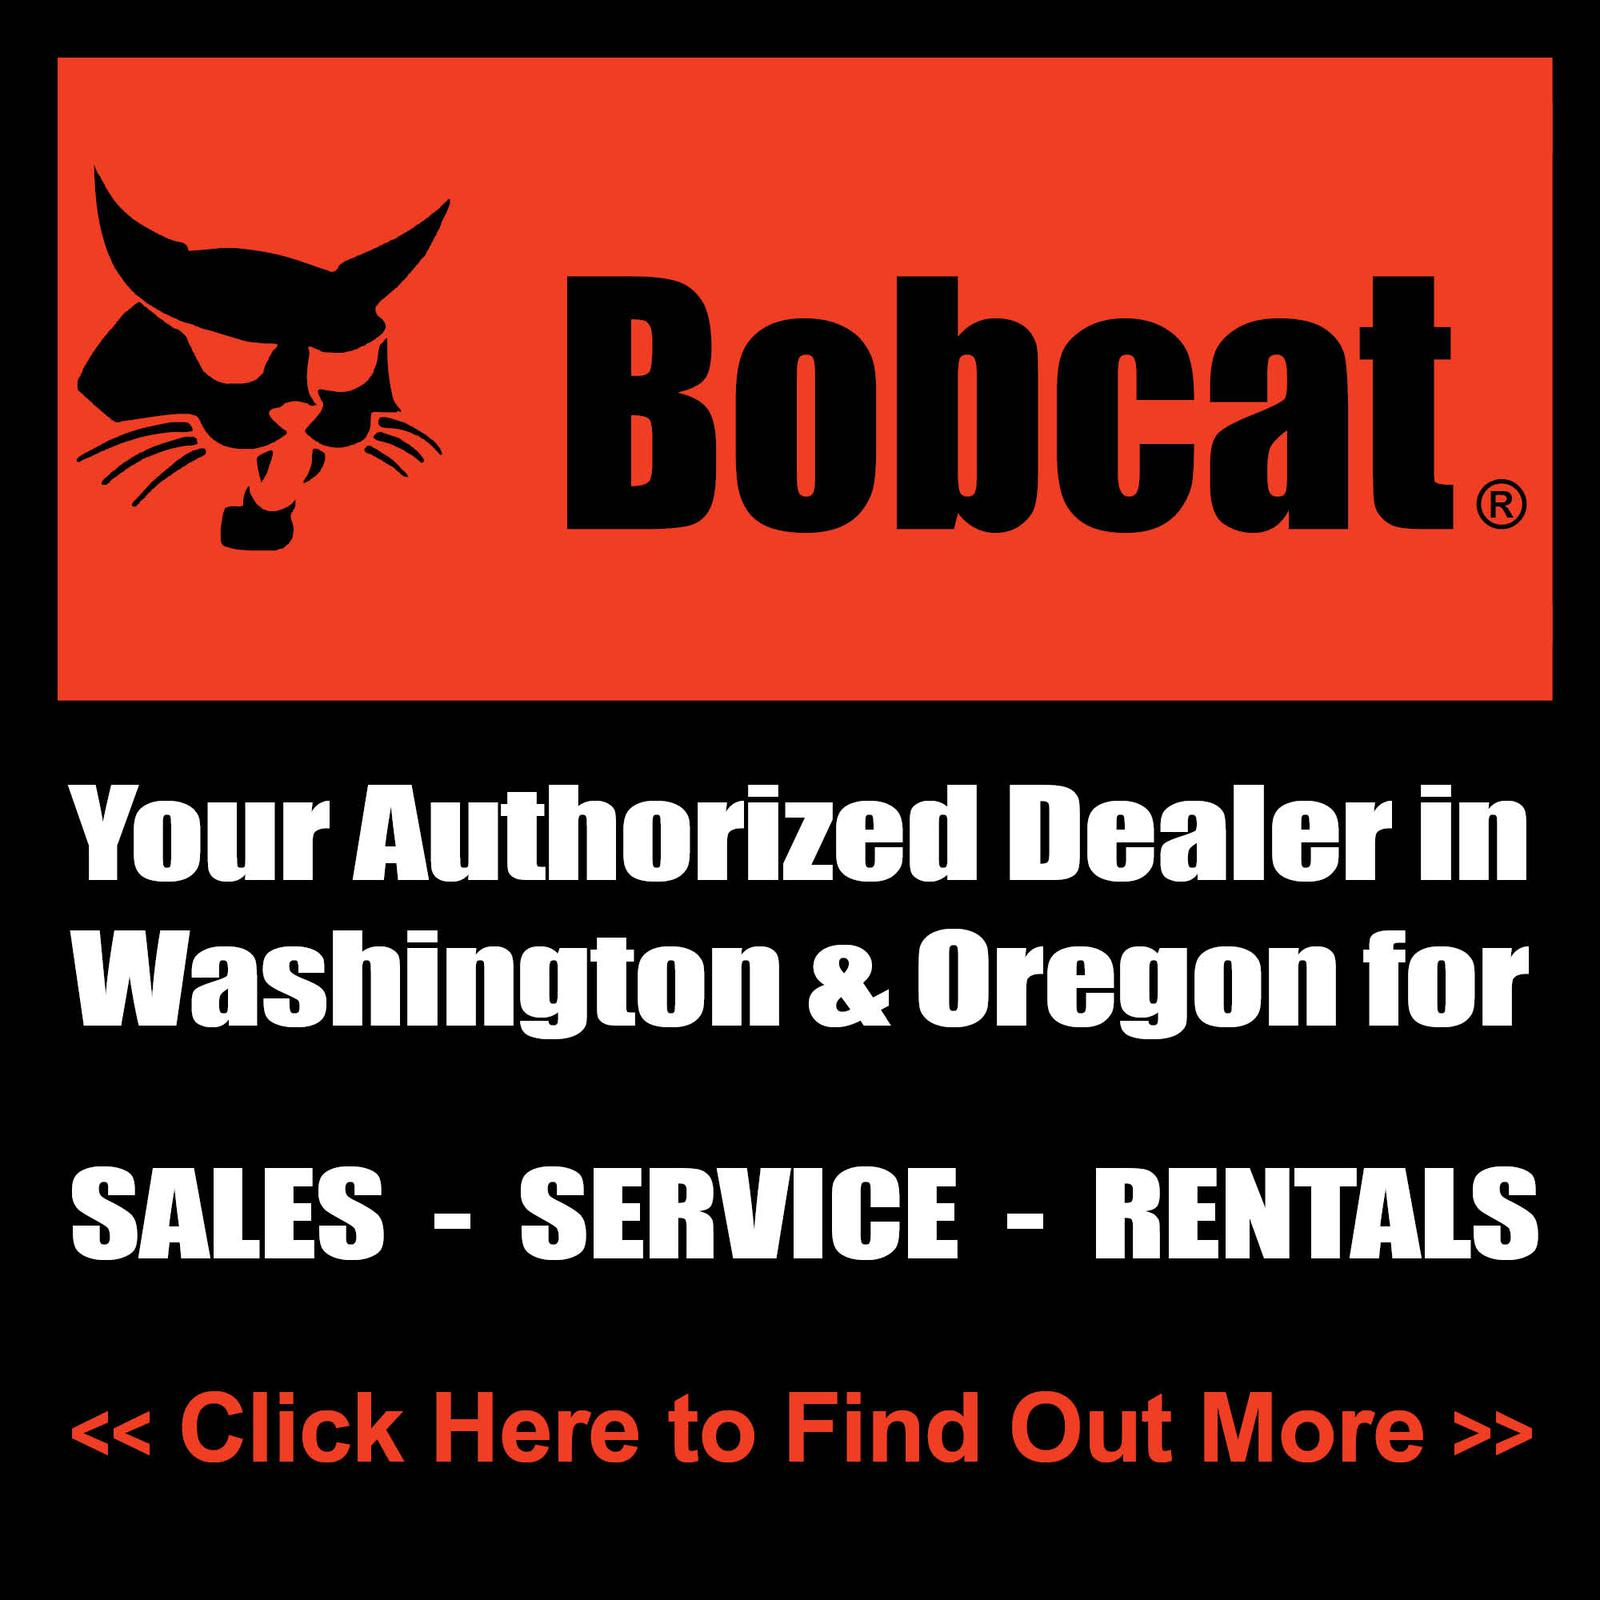 Authorized Bobcat Dealers in WA & OR